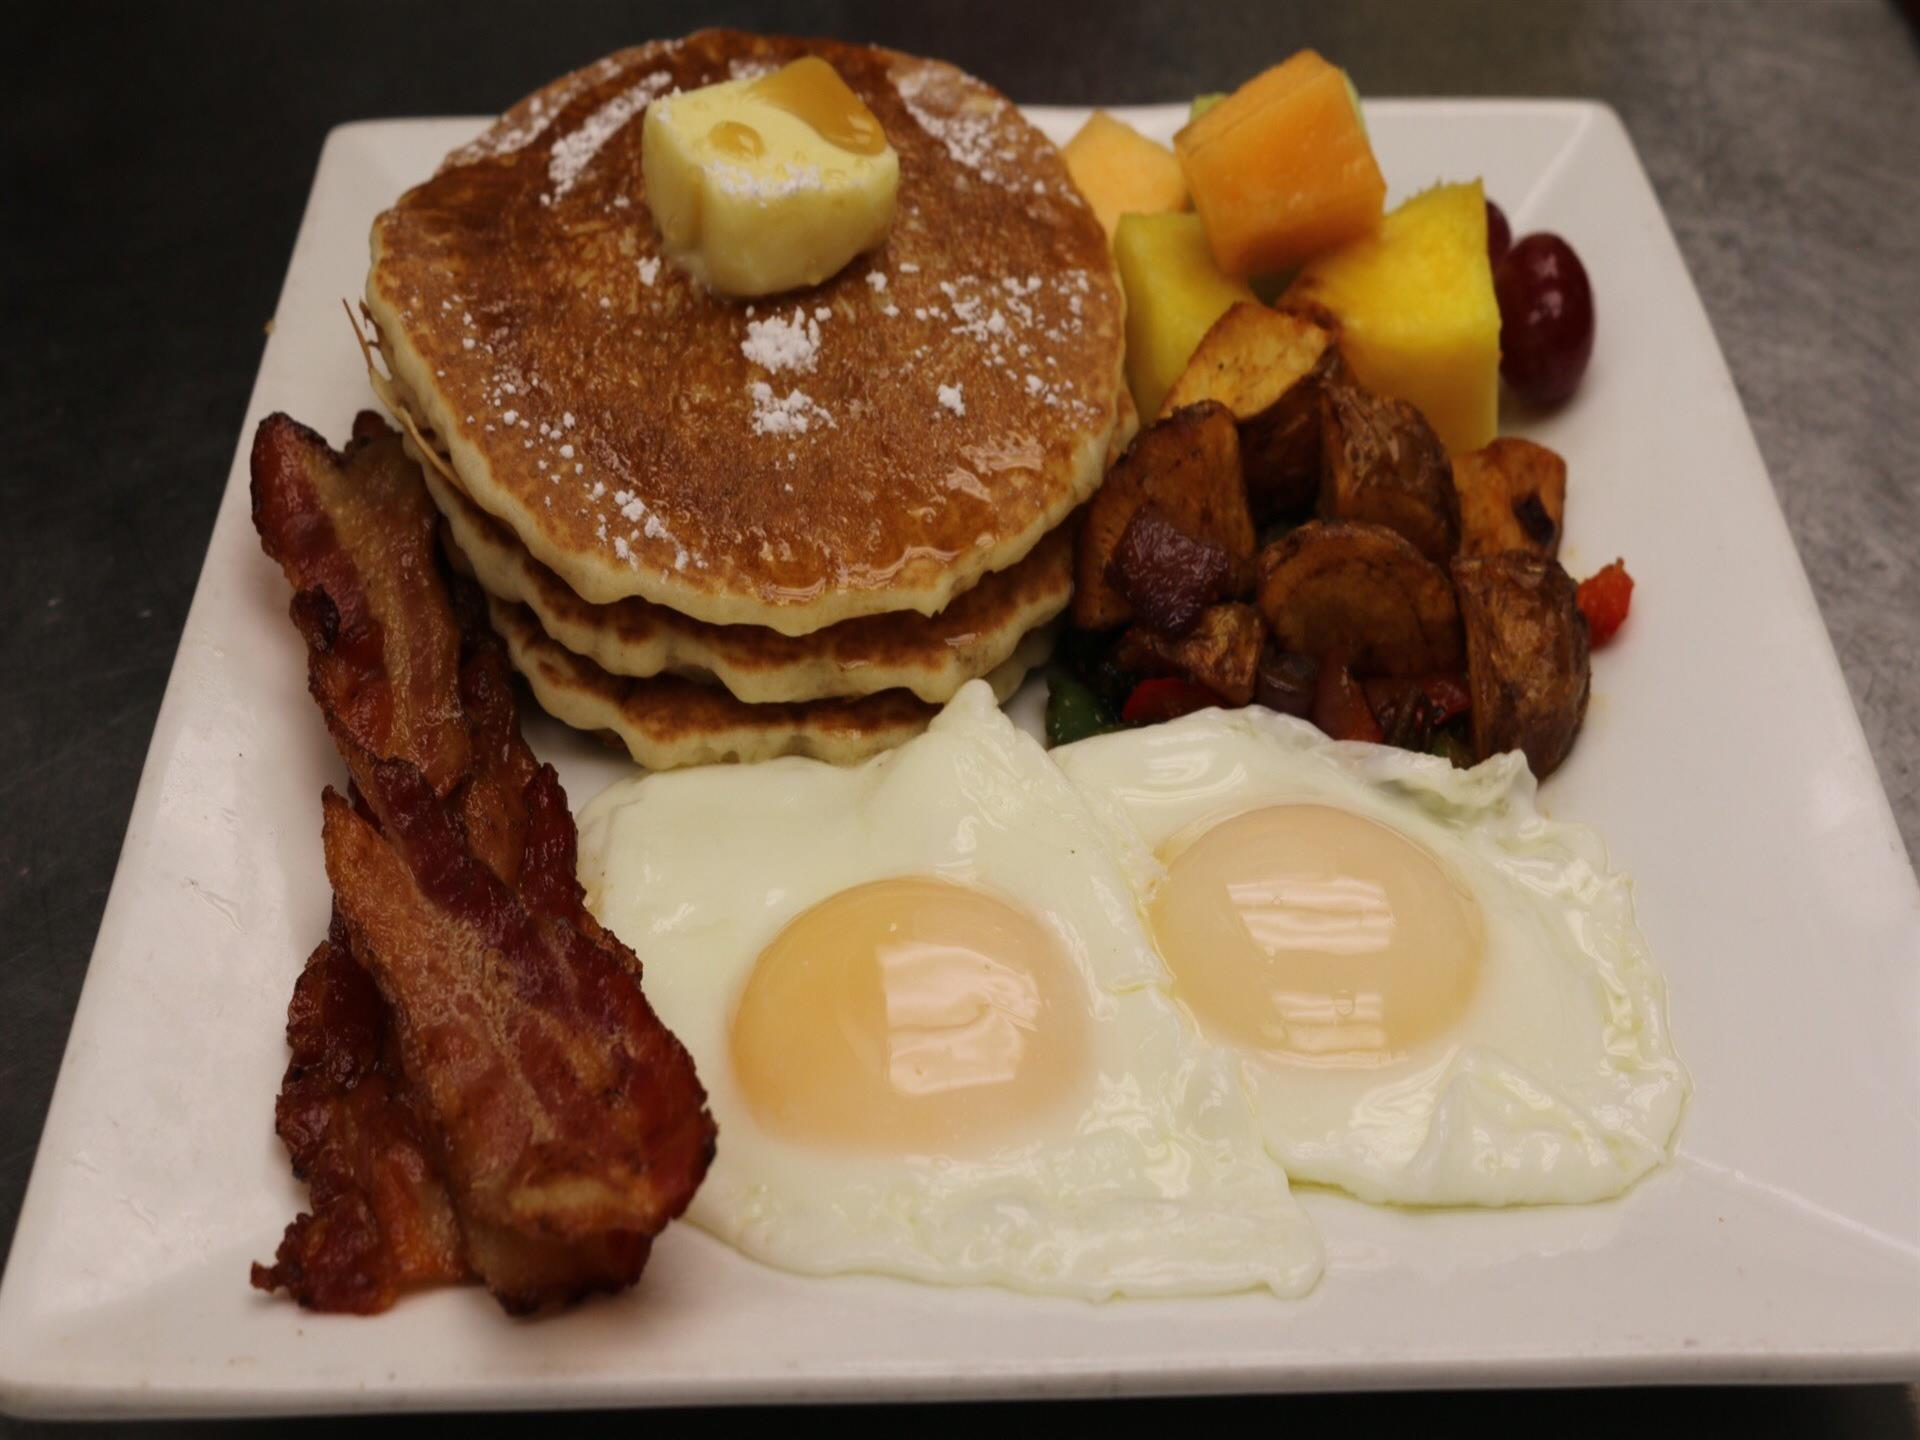 Two sunny side up eggs with 2 strips of bacon, short stack of pancakes, potatoes and fruit